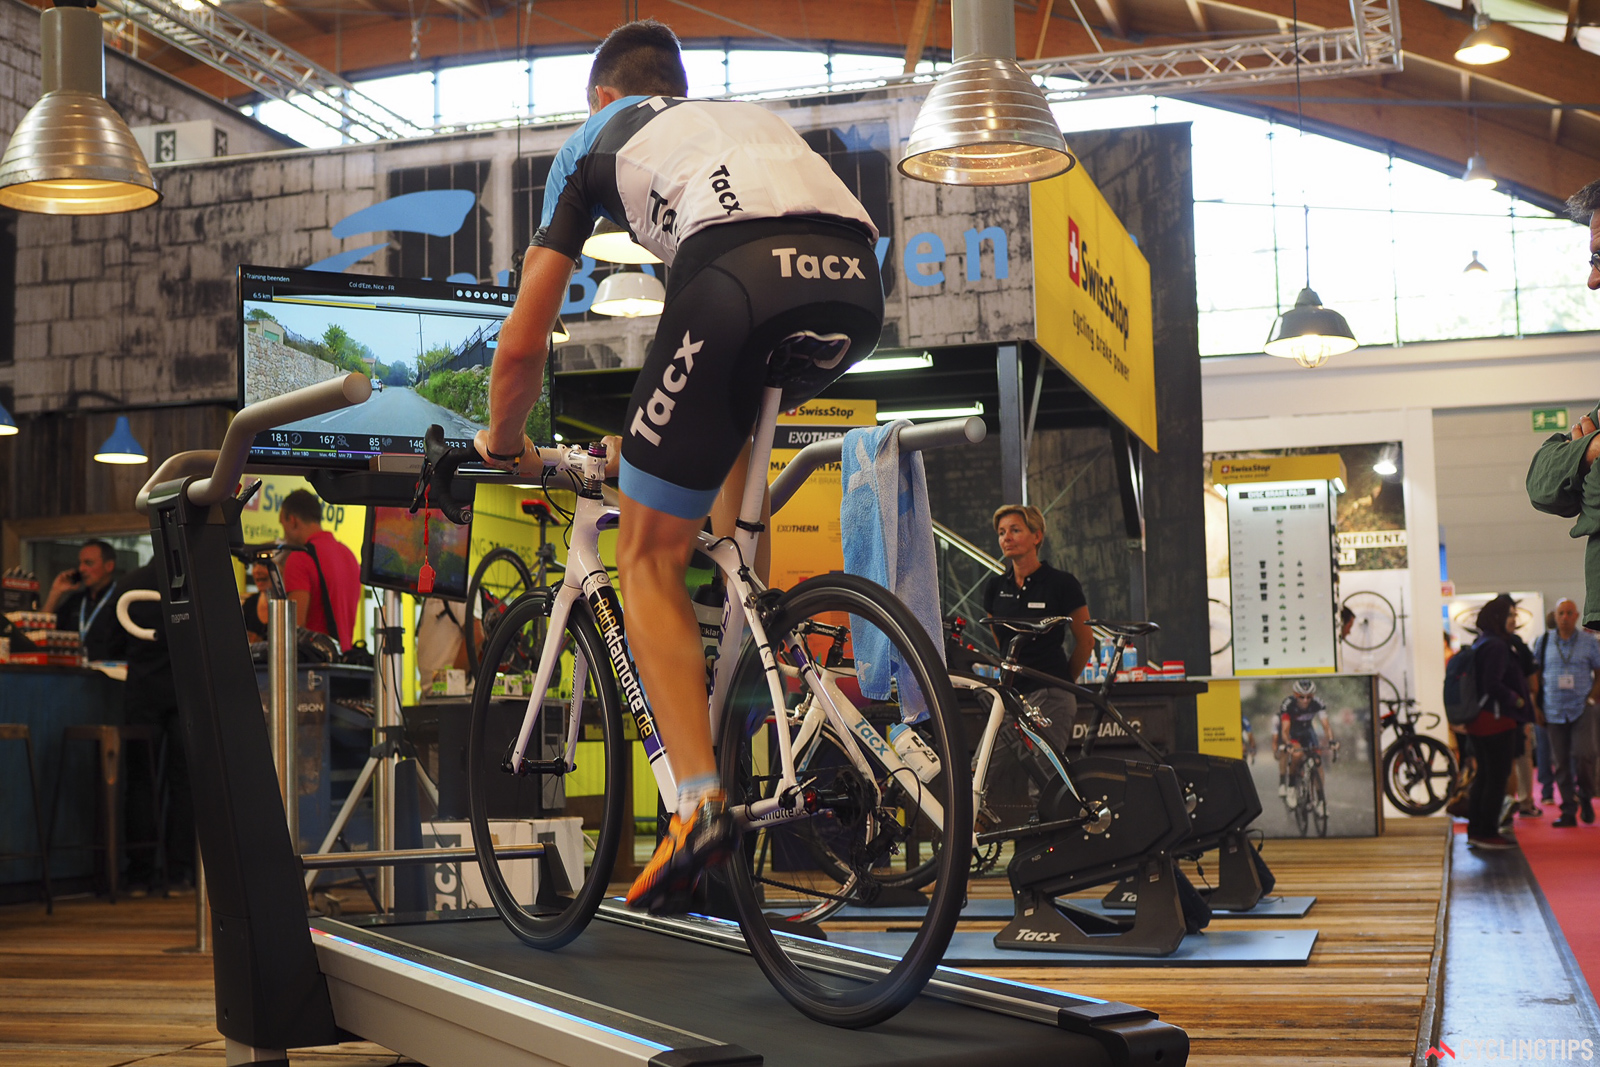 The latest trainer from Tacx still isn't the same as riding outdoors, but it's getting closer. And yes, it's essentially a treadmill for your bike. Photo: James Huang.